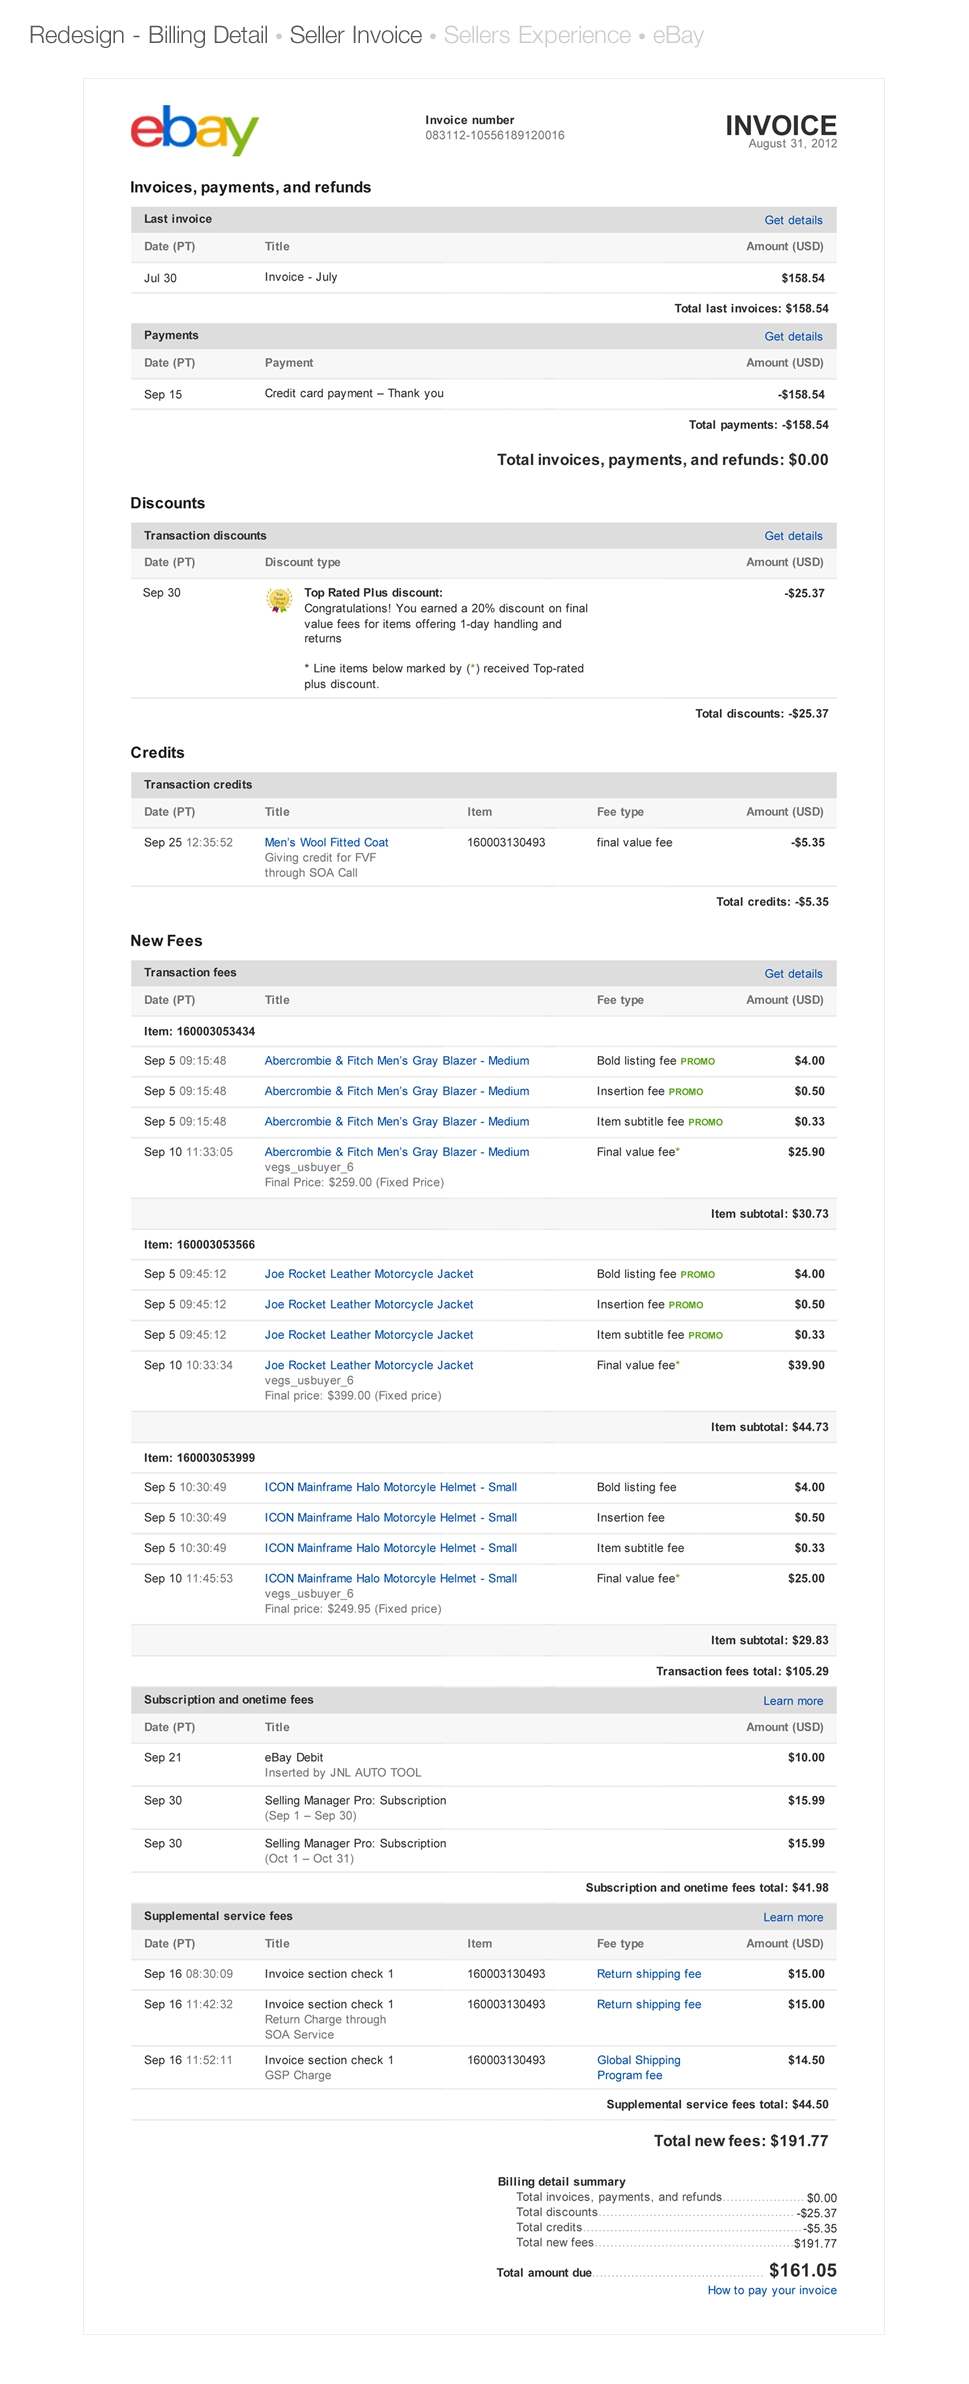 ebay marketplaces seller invoice redesign matthew perry ux ebay invoices for sellers